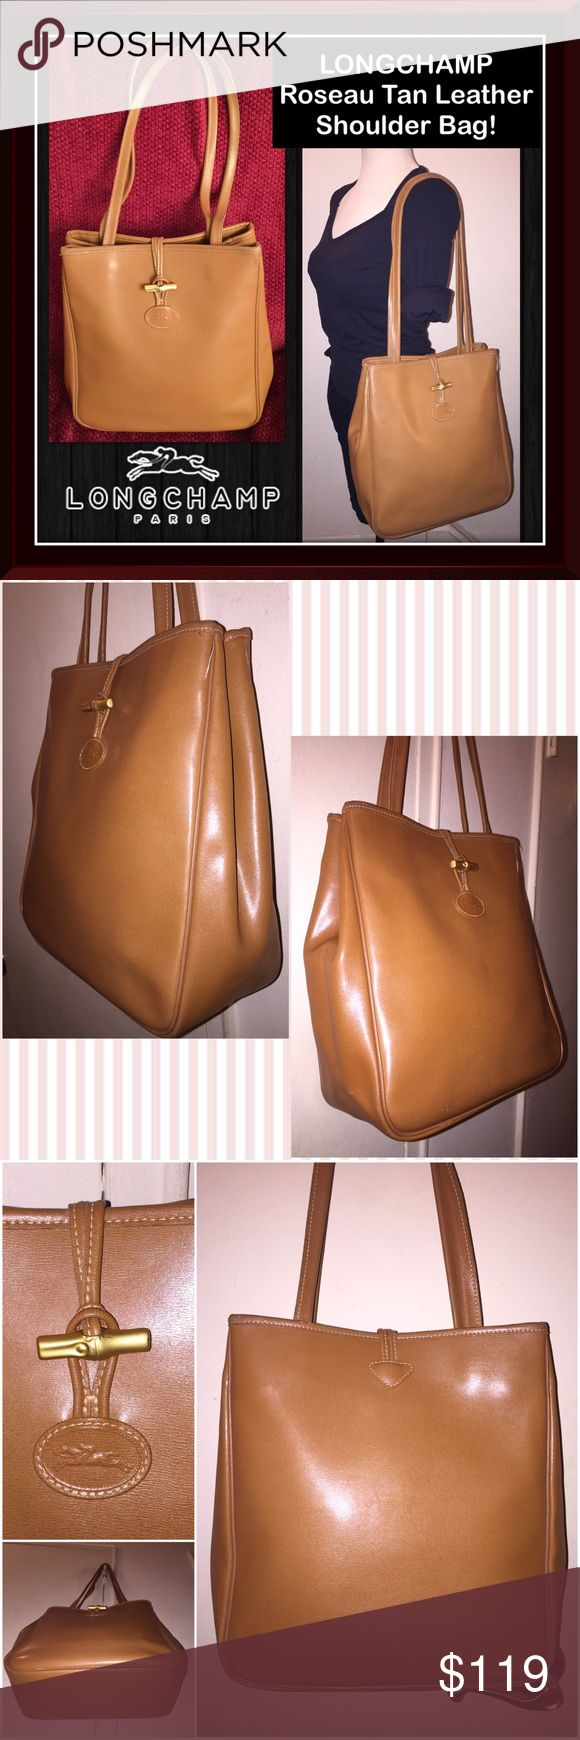 "LONGCHAMP Roseau Tan Leather Shoulder Bag! Longchamp Roseau Tan Leather Shoulder Bag! 100% authentic, front LONGCHAMP logo patch,  leather lining, dual shoulder strap, expandable side snaps, signature gold-tone bamboo toggle closure, LONGCHAMP zip pull & one large interior zipper pocket. Measures 12"" high x 10 1/2"" across x 4 1/2"" wide with 12 1/2"" shoulder/arm clearance. Some strap wear which is not noticeable when worn. No tears, offensive odors or damage. Good condition. Offers welcome…"